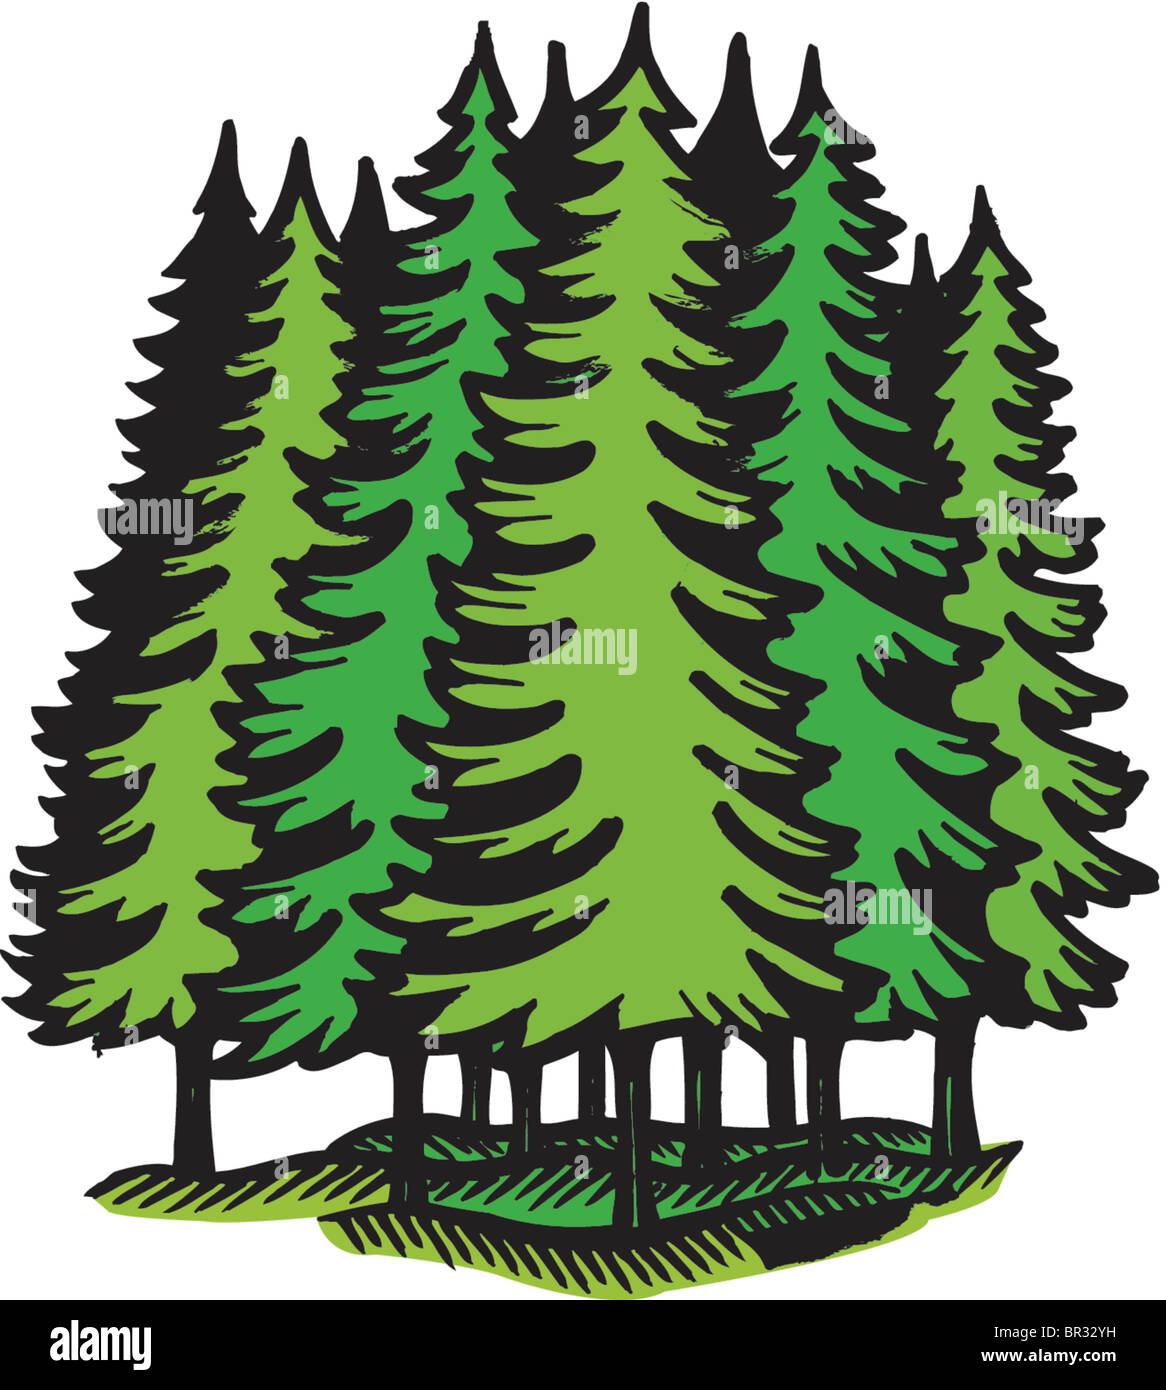 Wild animal of forest symbol of russia drawing by popaukropa 1 / 76 vector silhouettes tree on white background stock illustration by basel101658 6 / 648 vector silhouette bird on tree stock illustrations by basel101658 13 / 1,418 wild coniferous wood at sunset. An Illustration Of An Coniferous Forest Stock Photo Alamy